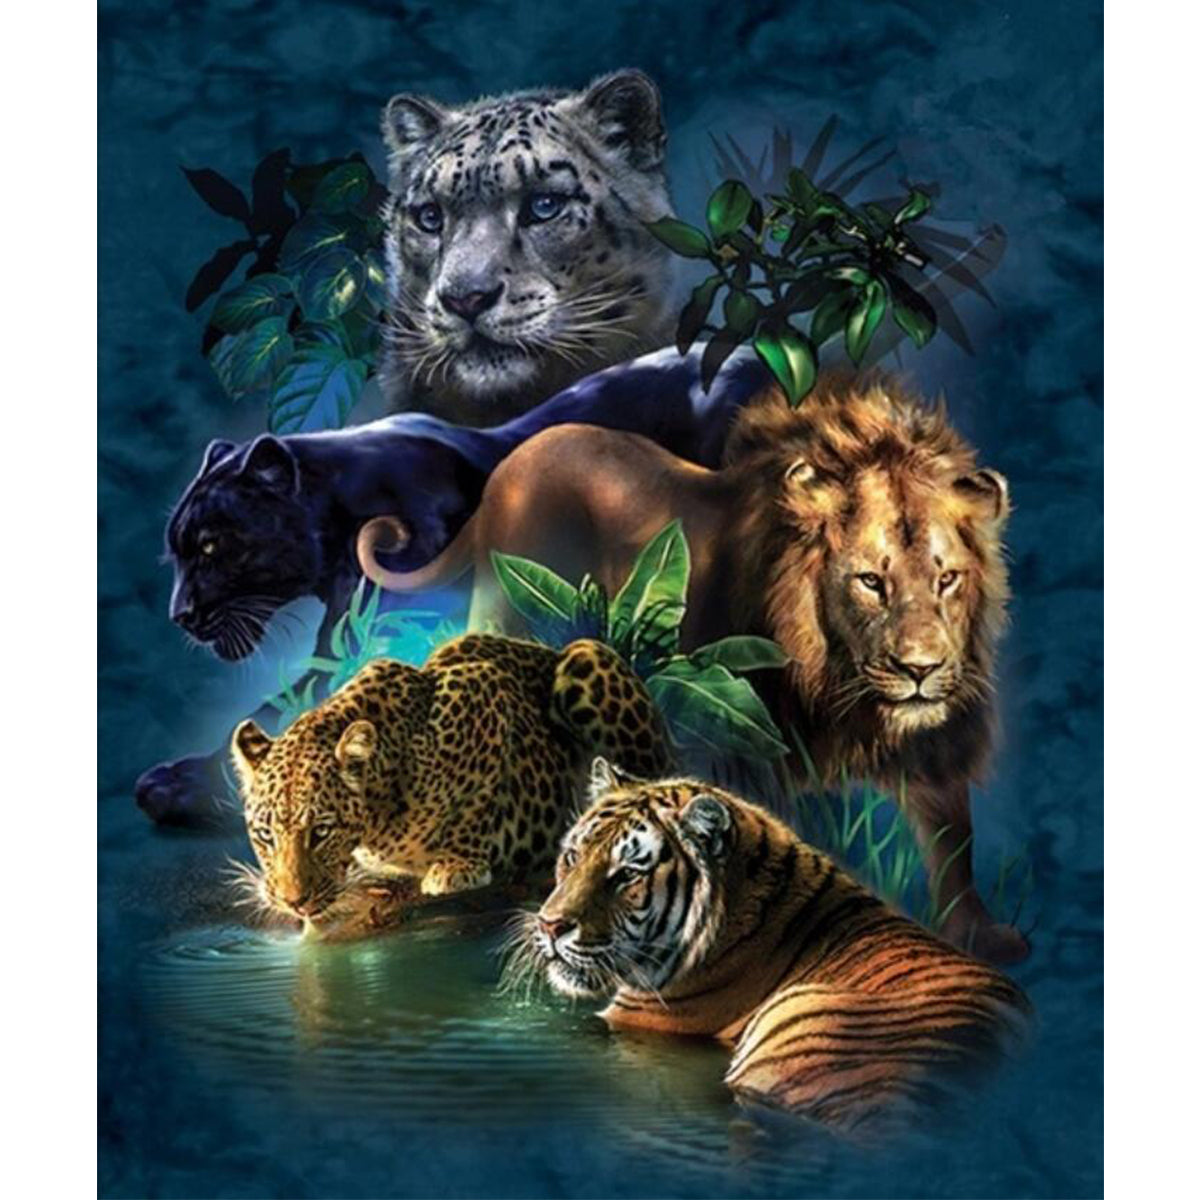 DIY 5D Diamond Paintings Tiger Lion Embroidery Cross Crafts Stitch Tool Kit